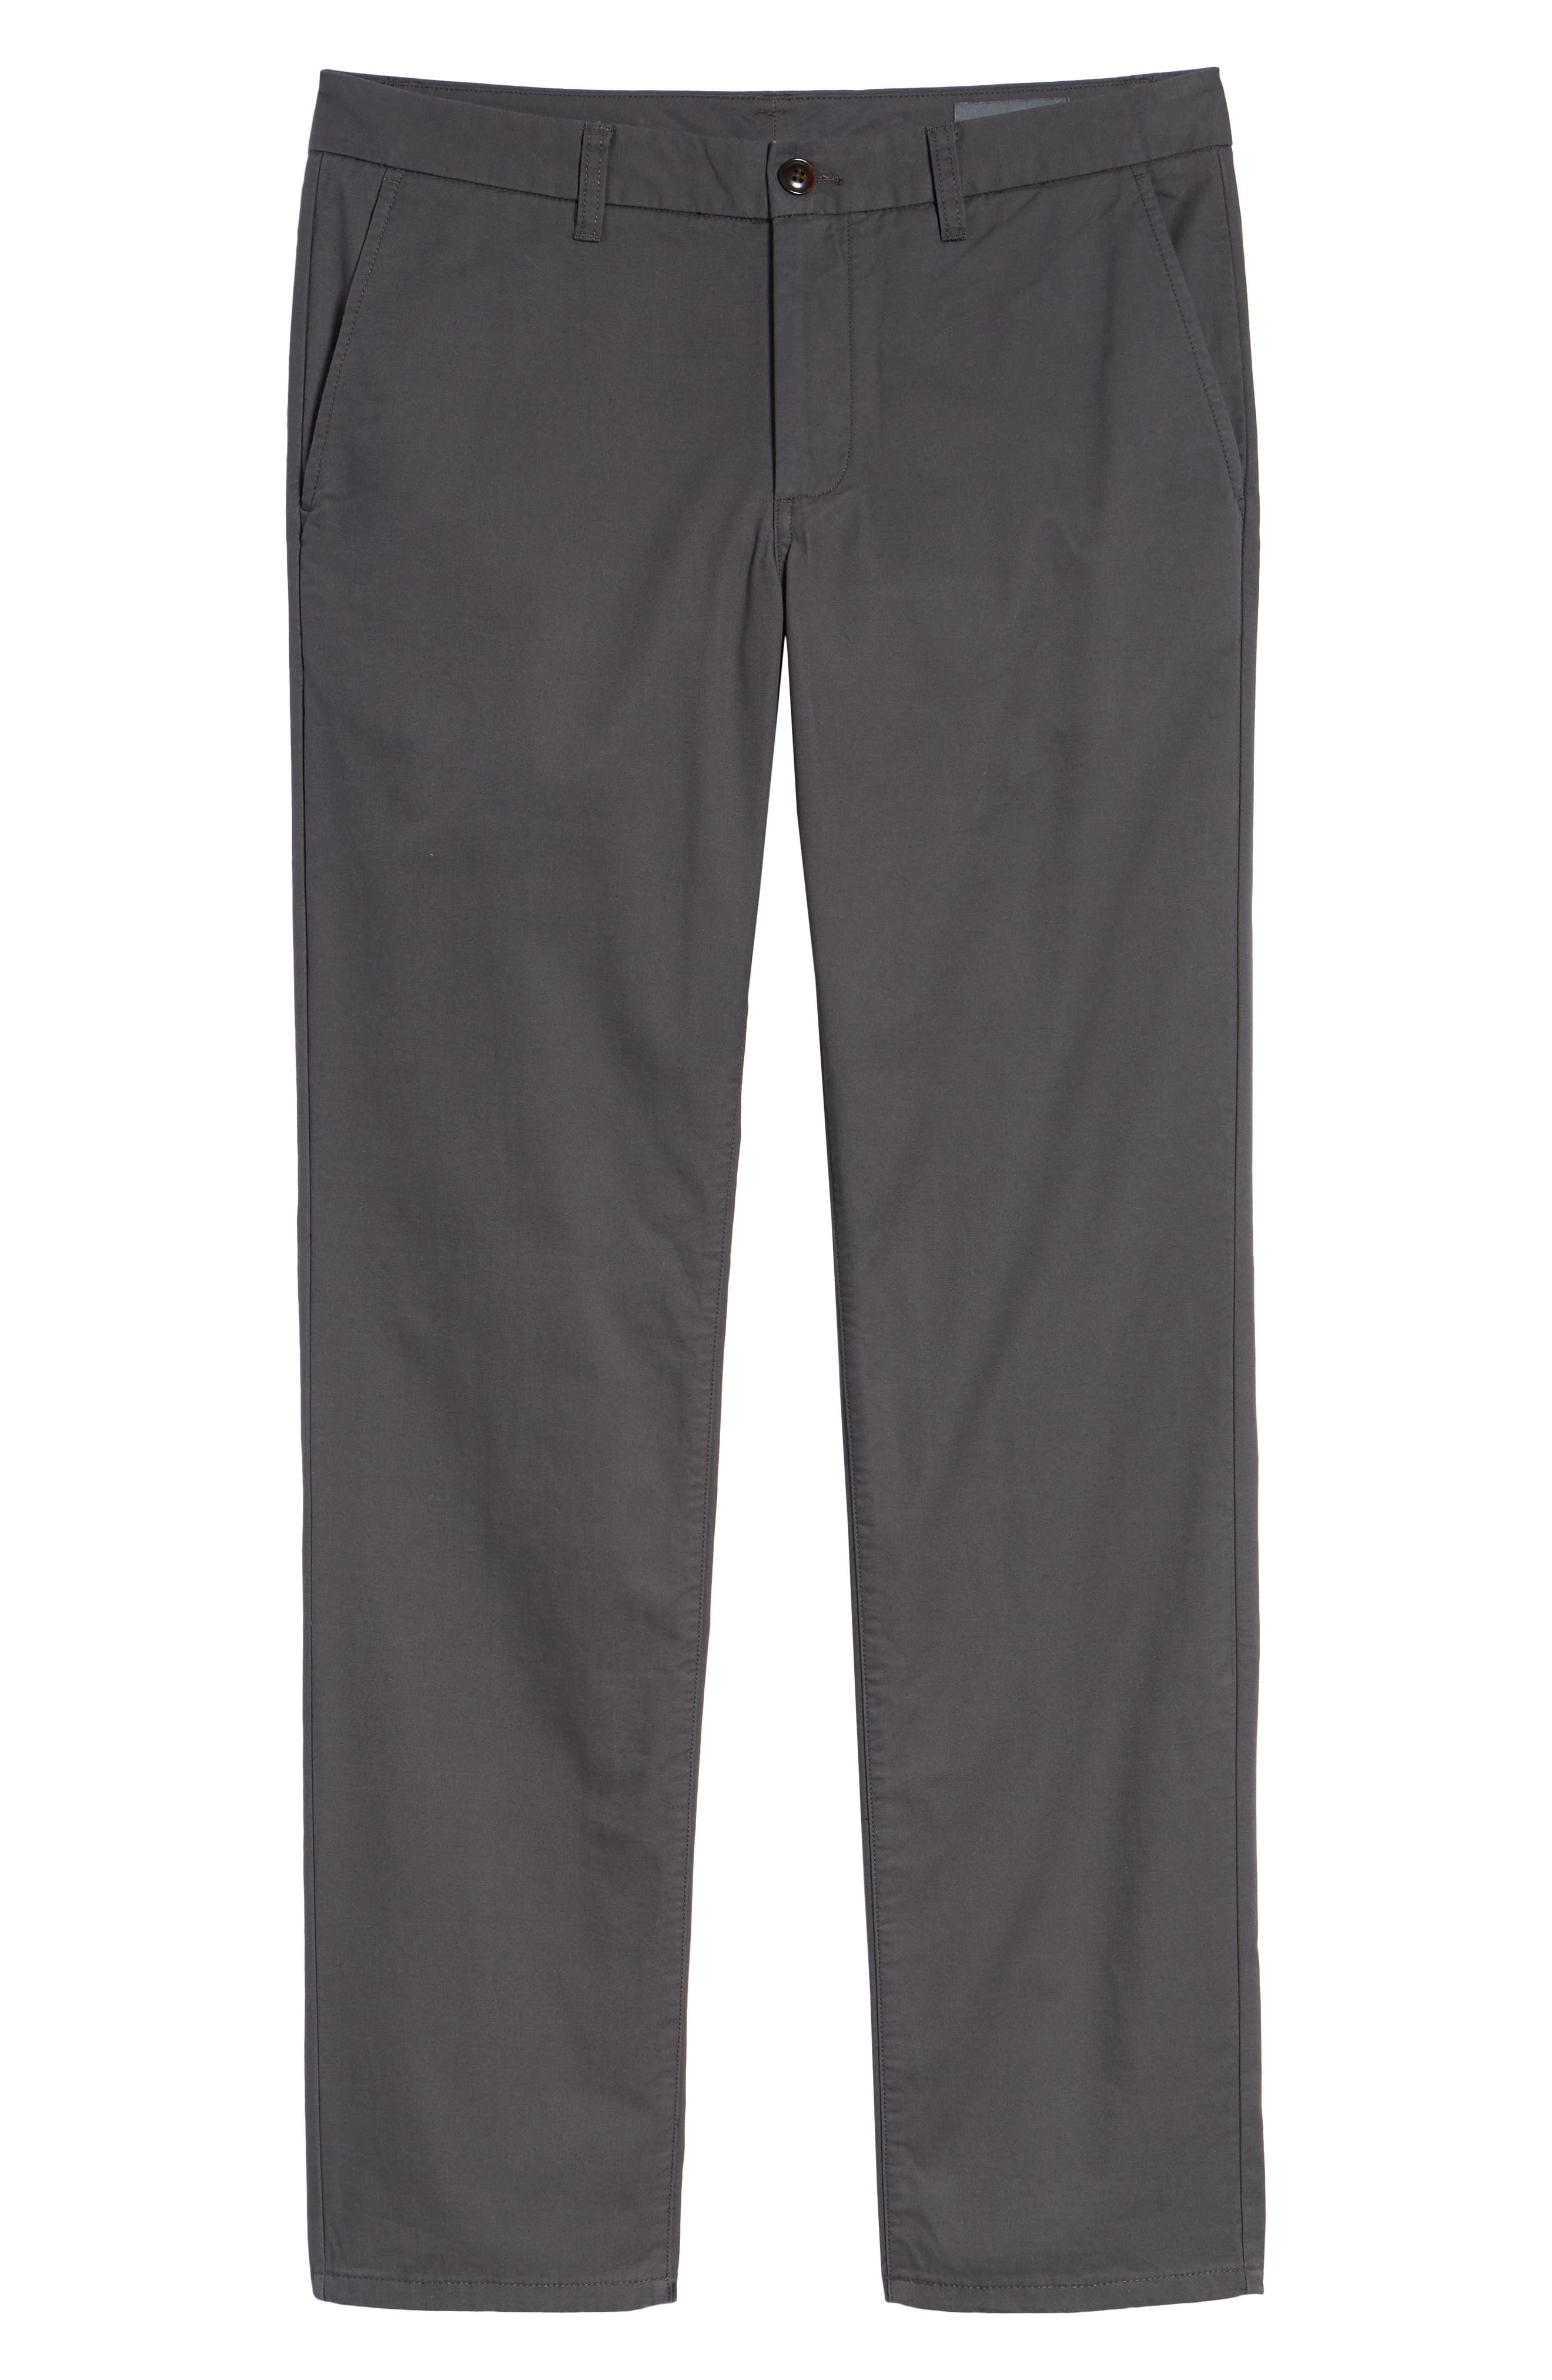 Slim Fit Flannel Lined Chinos,                             Alternate thumbnail 6, color,                             COAL GREY